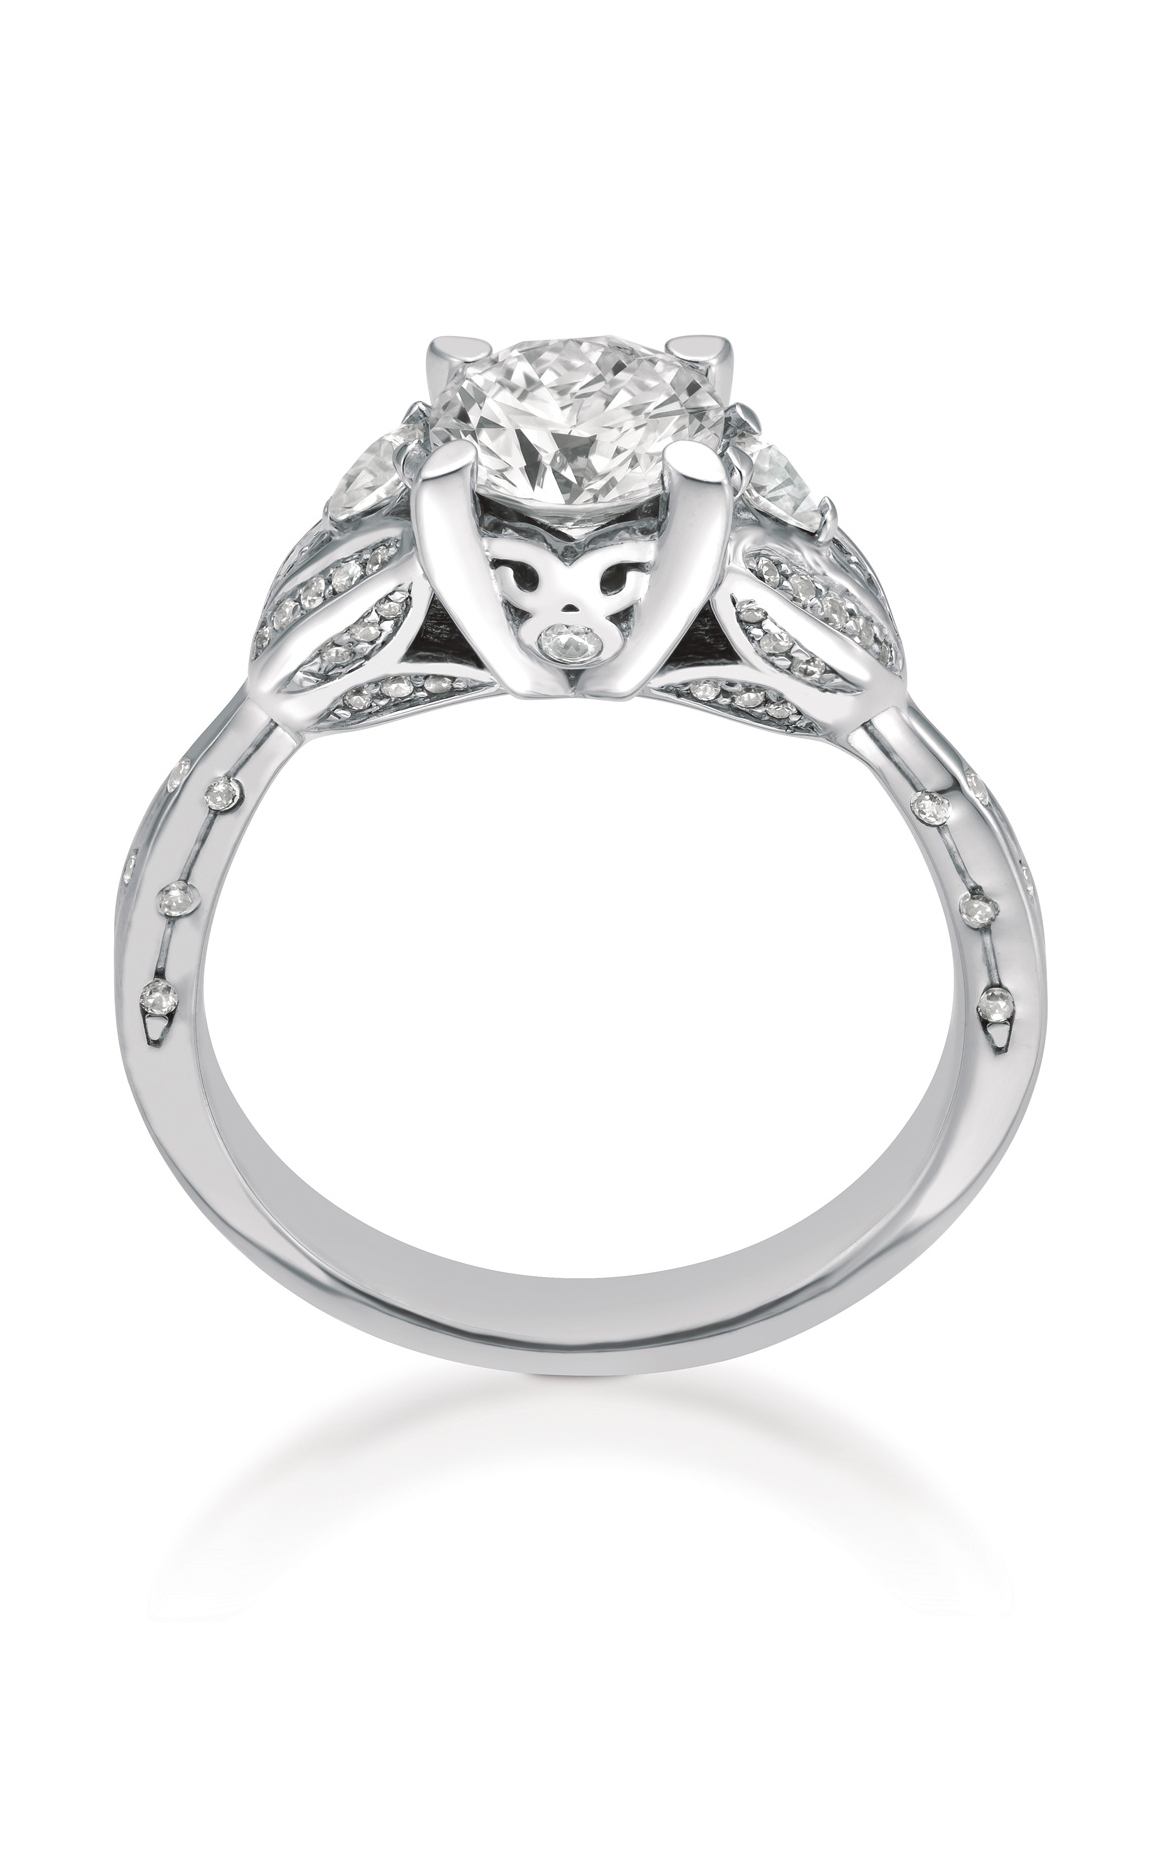 Shop Maevona A081 Tul Pv G8 Engagement Ring | Benari Jewelers With Regard To Scottish Engagement Rings (View 9 of 15)